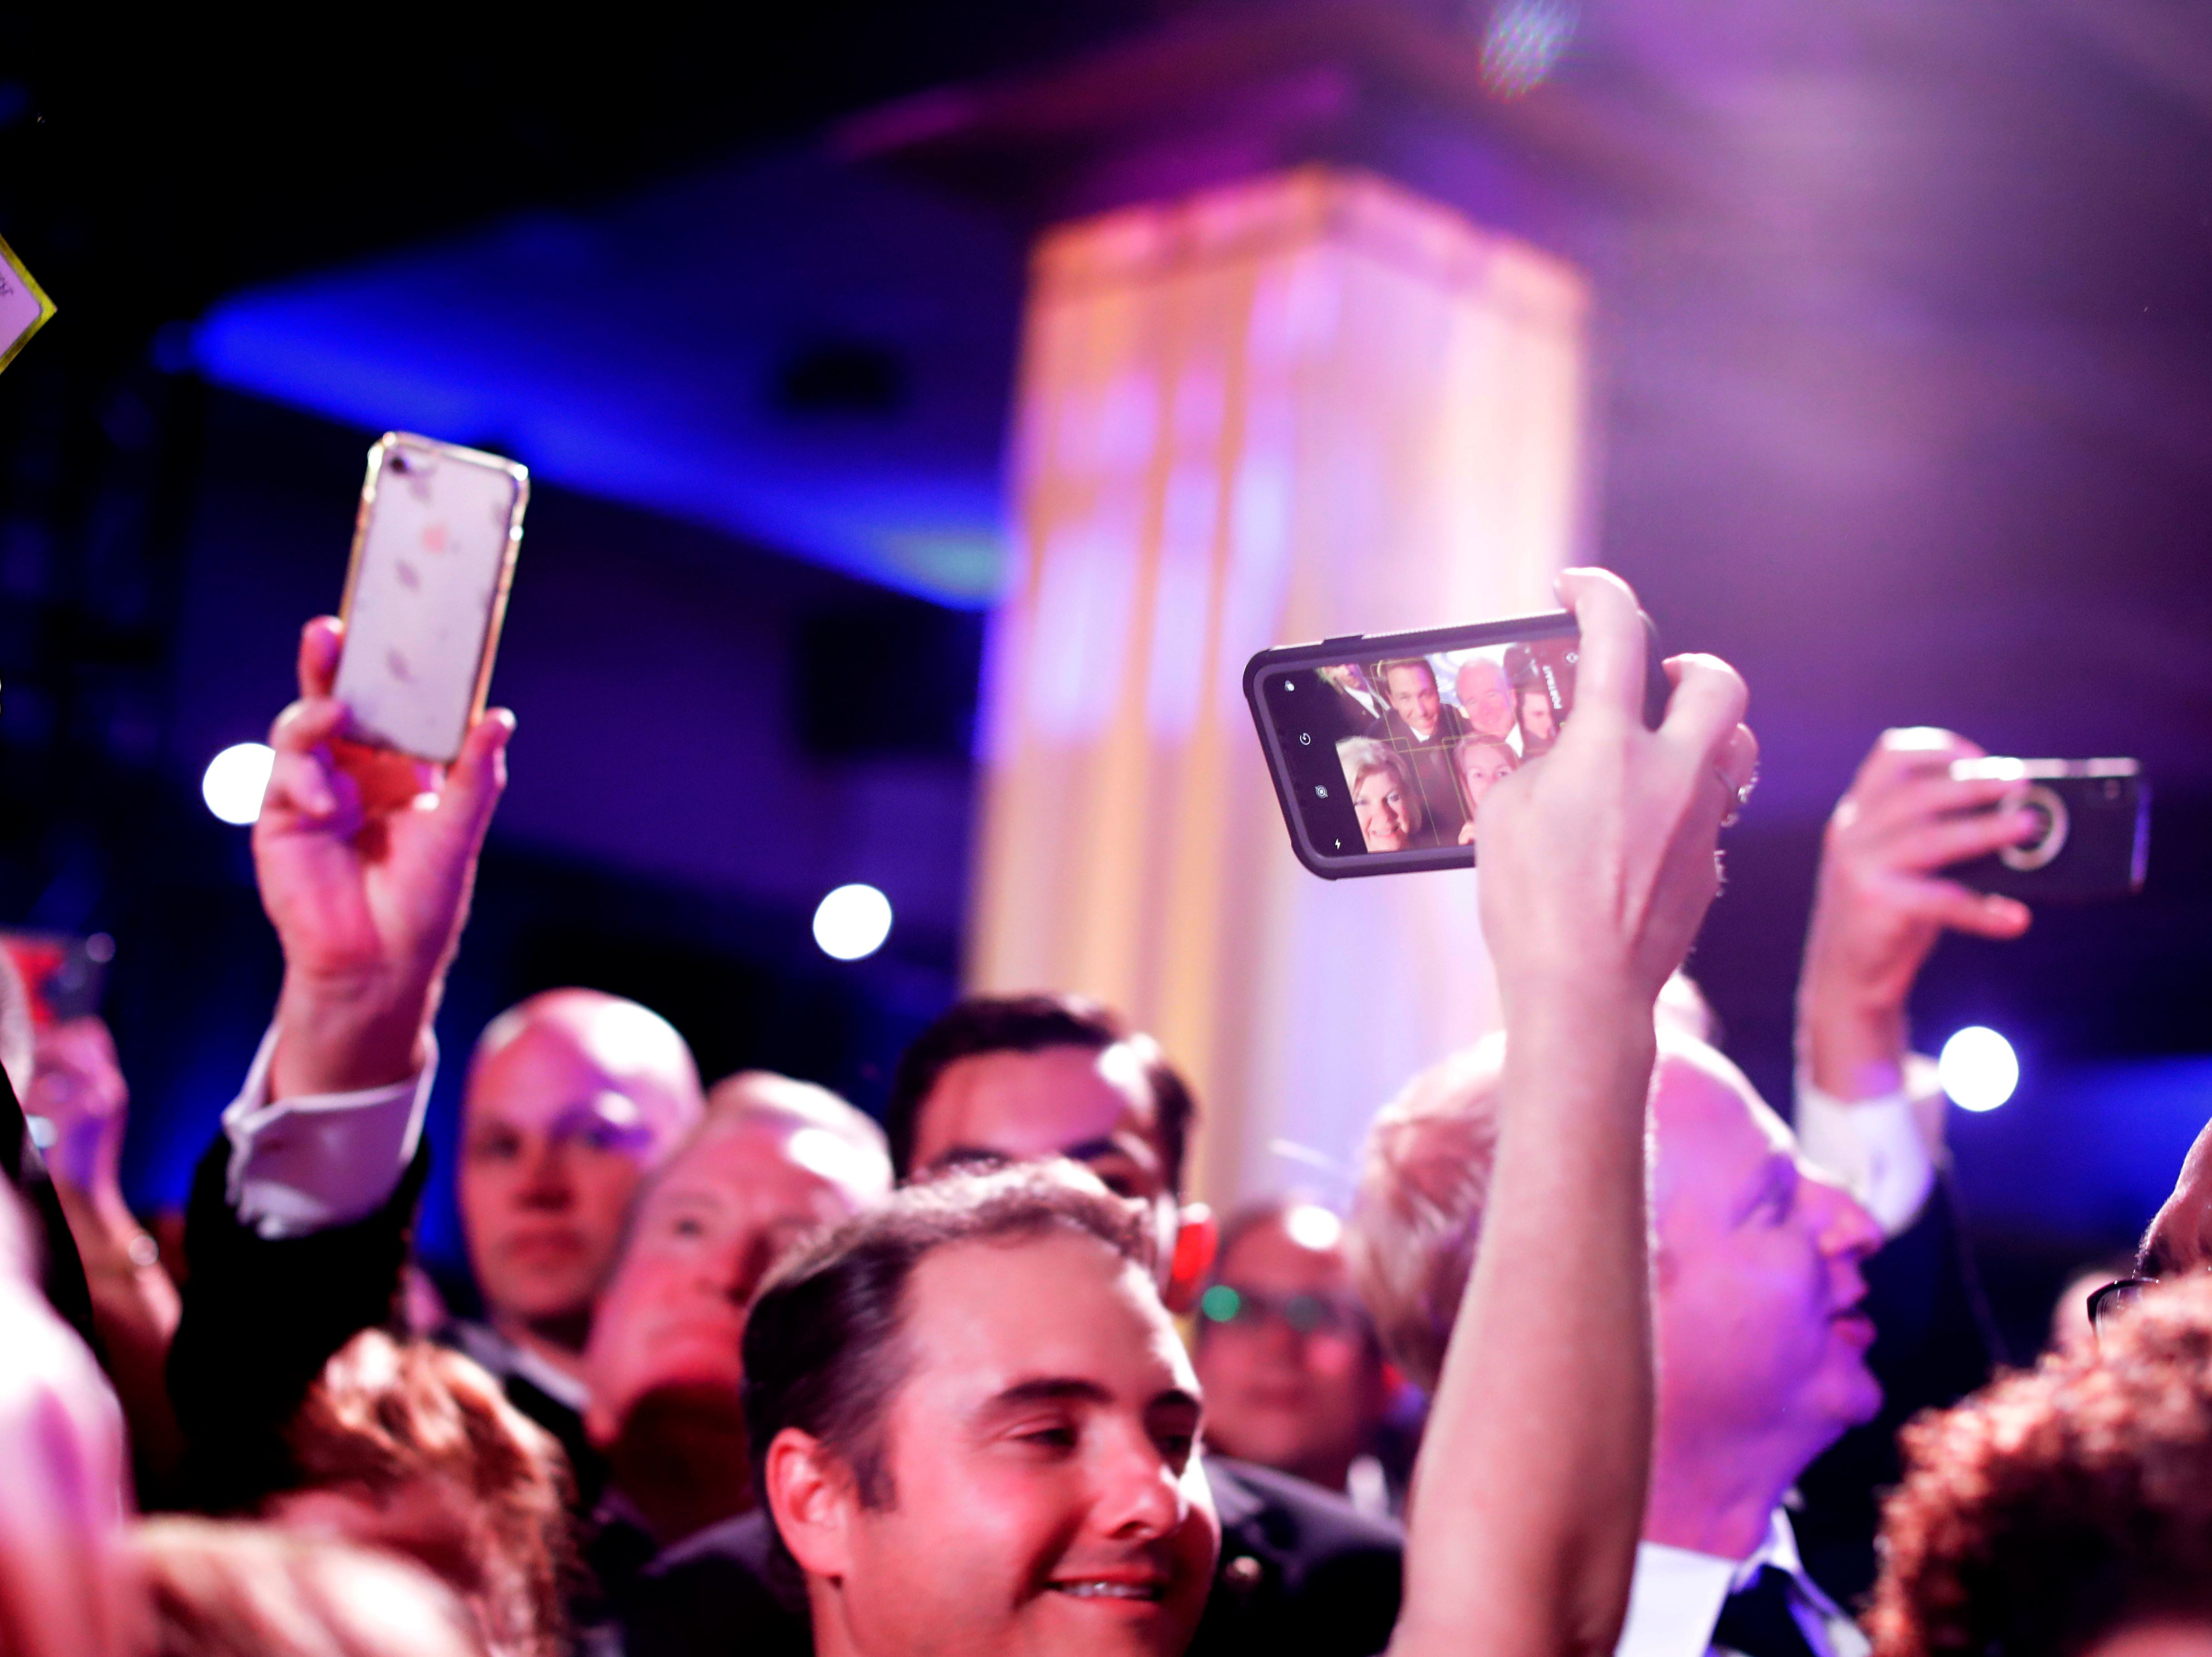 Hundreds of guests from all over Florida attend Florida's 46th Governor's Inaugural Ball at the Tucker Civic Center, Tuesday, Jan. 8, 2019. A guest takes a selfie with a group of friends and Gov. Ron DeSantis.